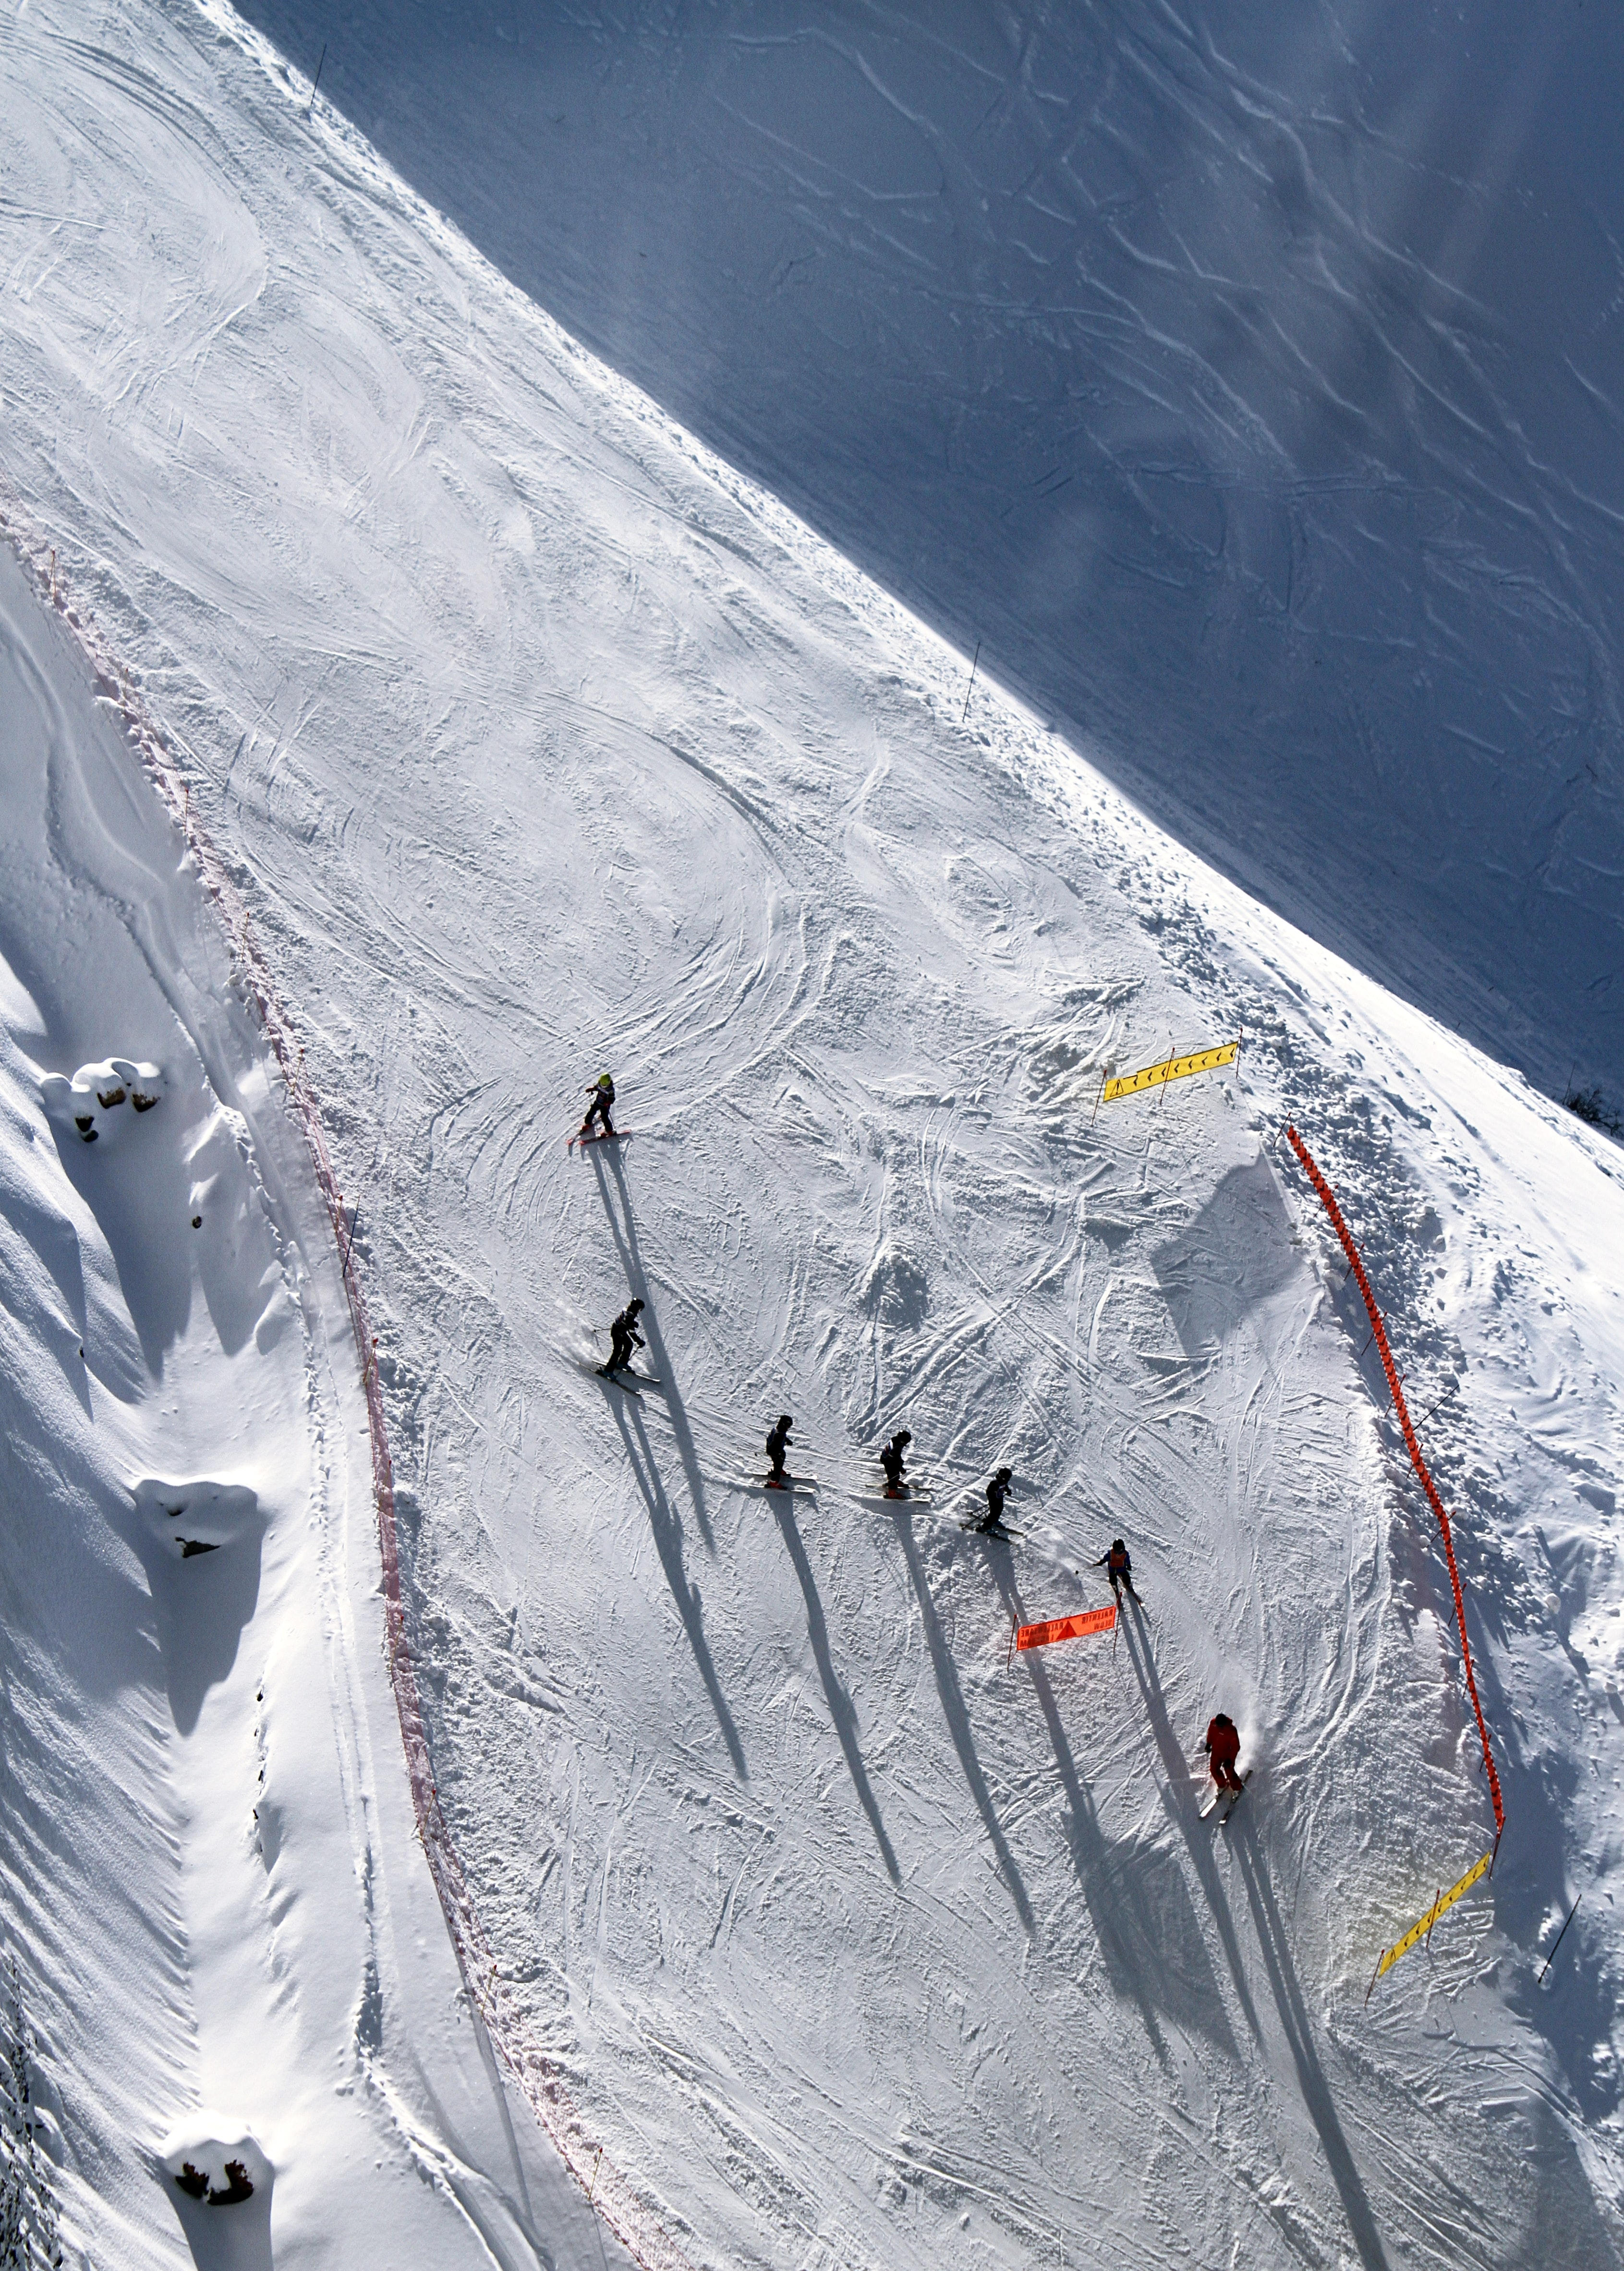 A drone shot directly above seven skiers preparing for a slope race